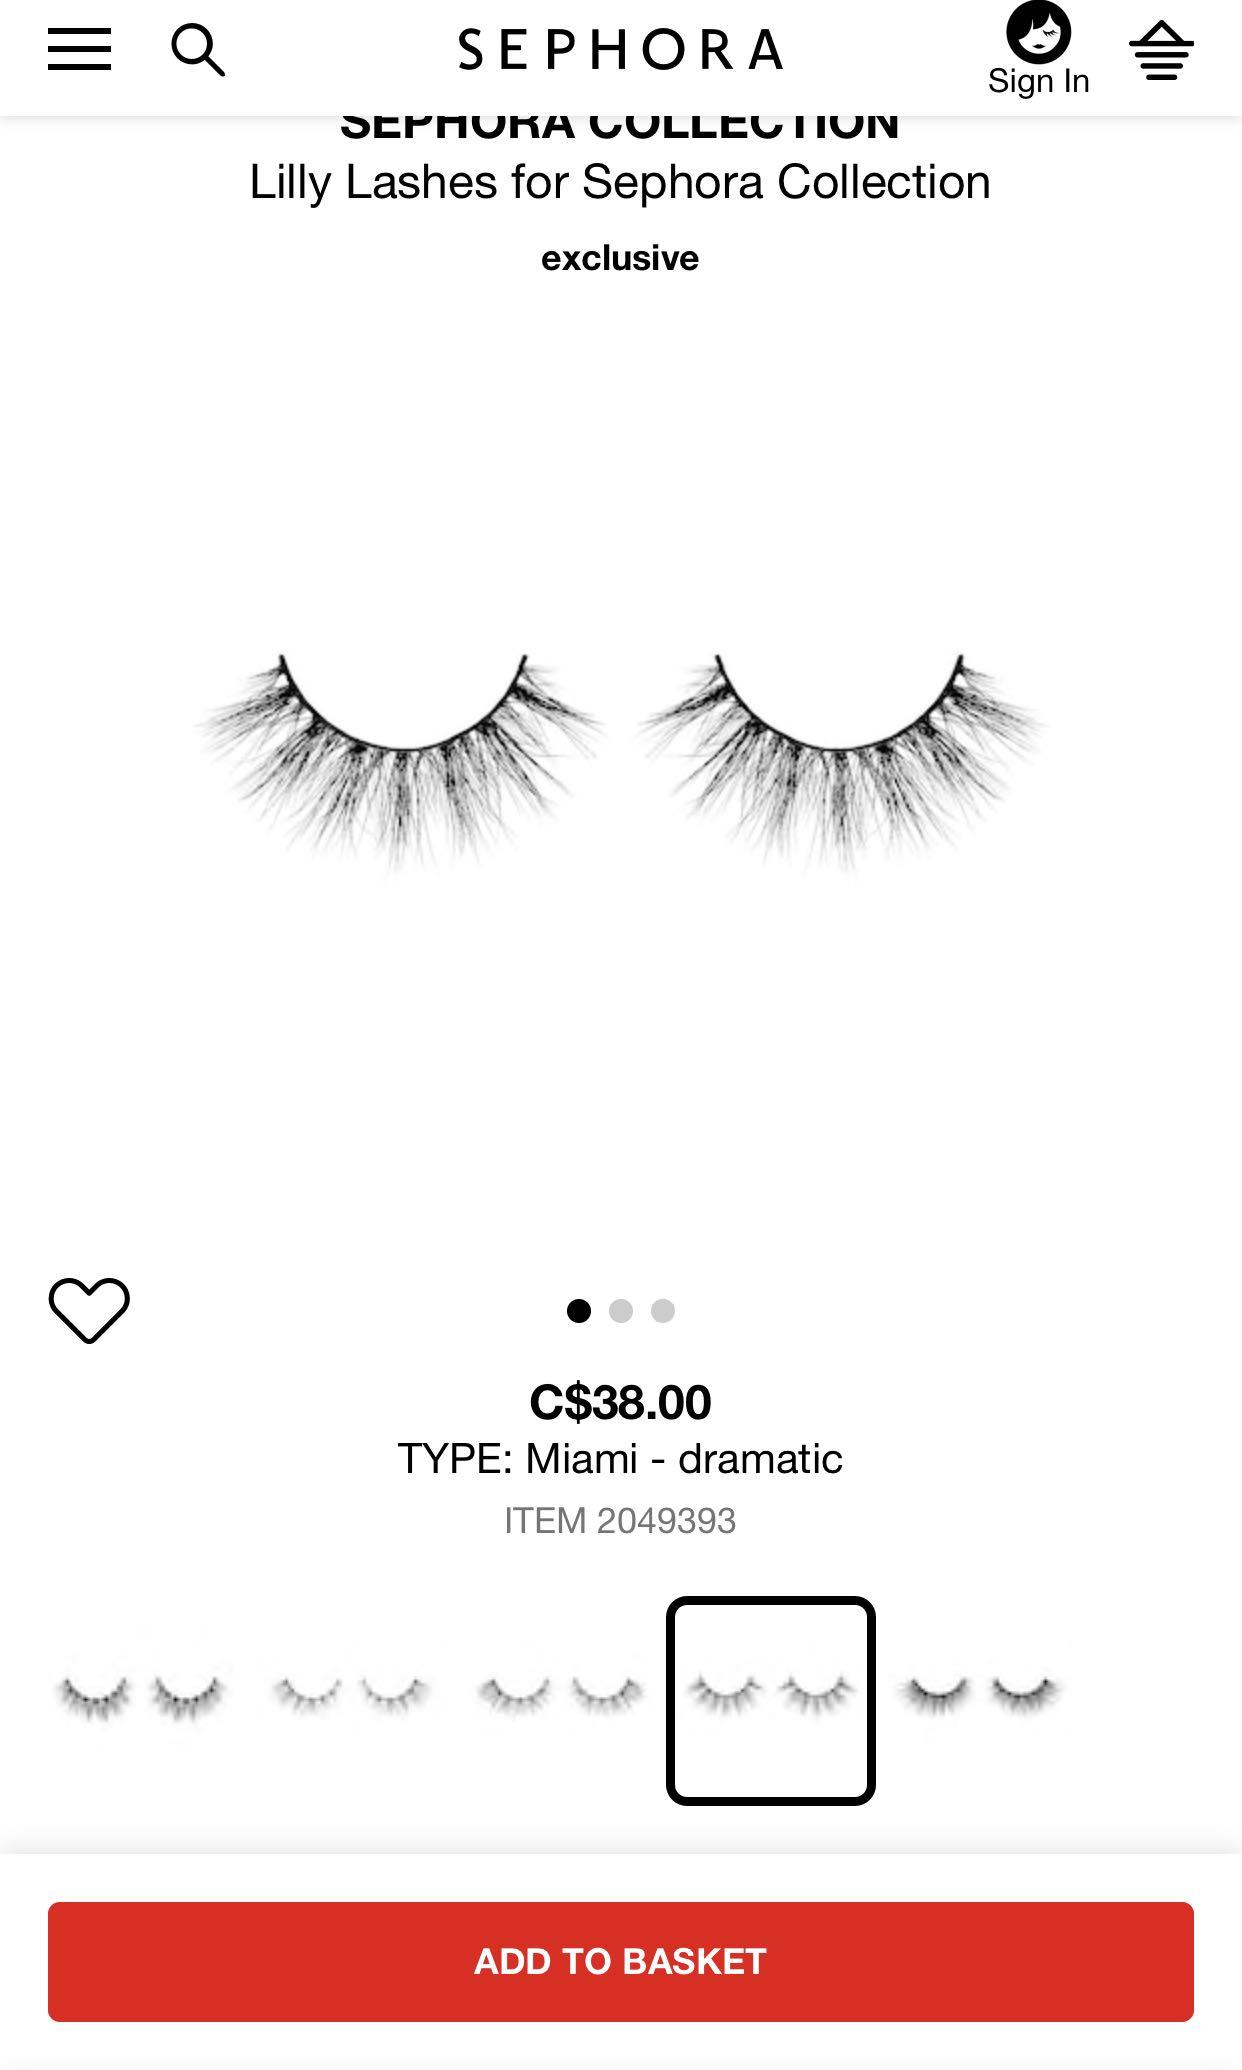 LILLYLASHES IN 'MIAMI'